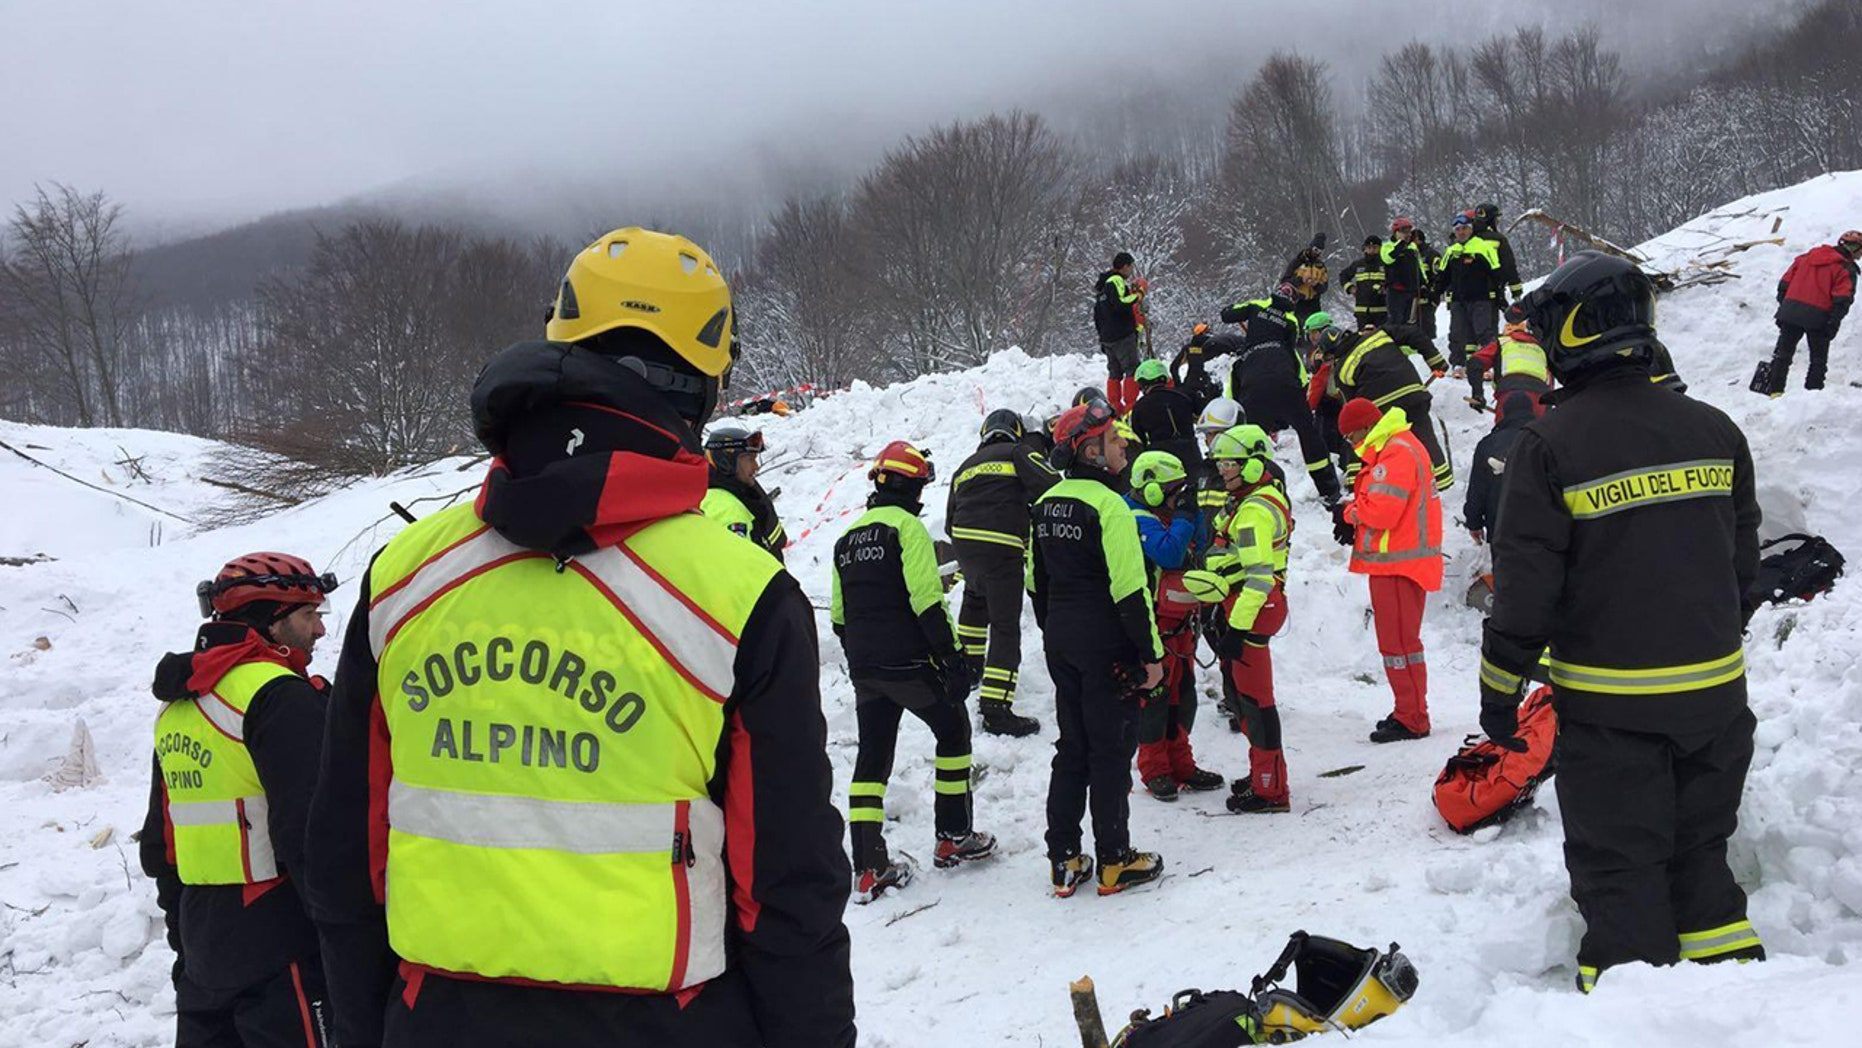 Rescuers work in the area of the avalanche-hit Rigopiano hotel, Saturday, Jan. 21, 2017.